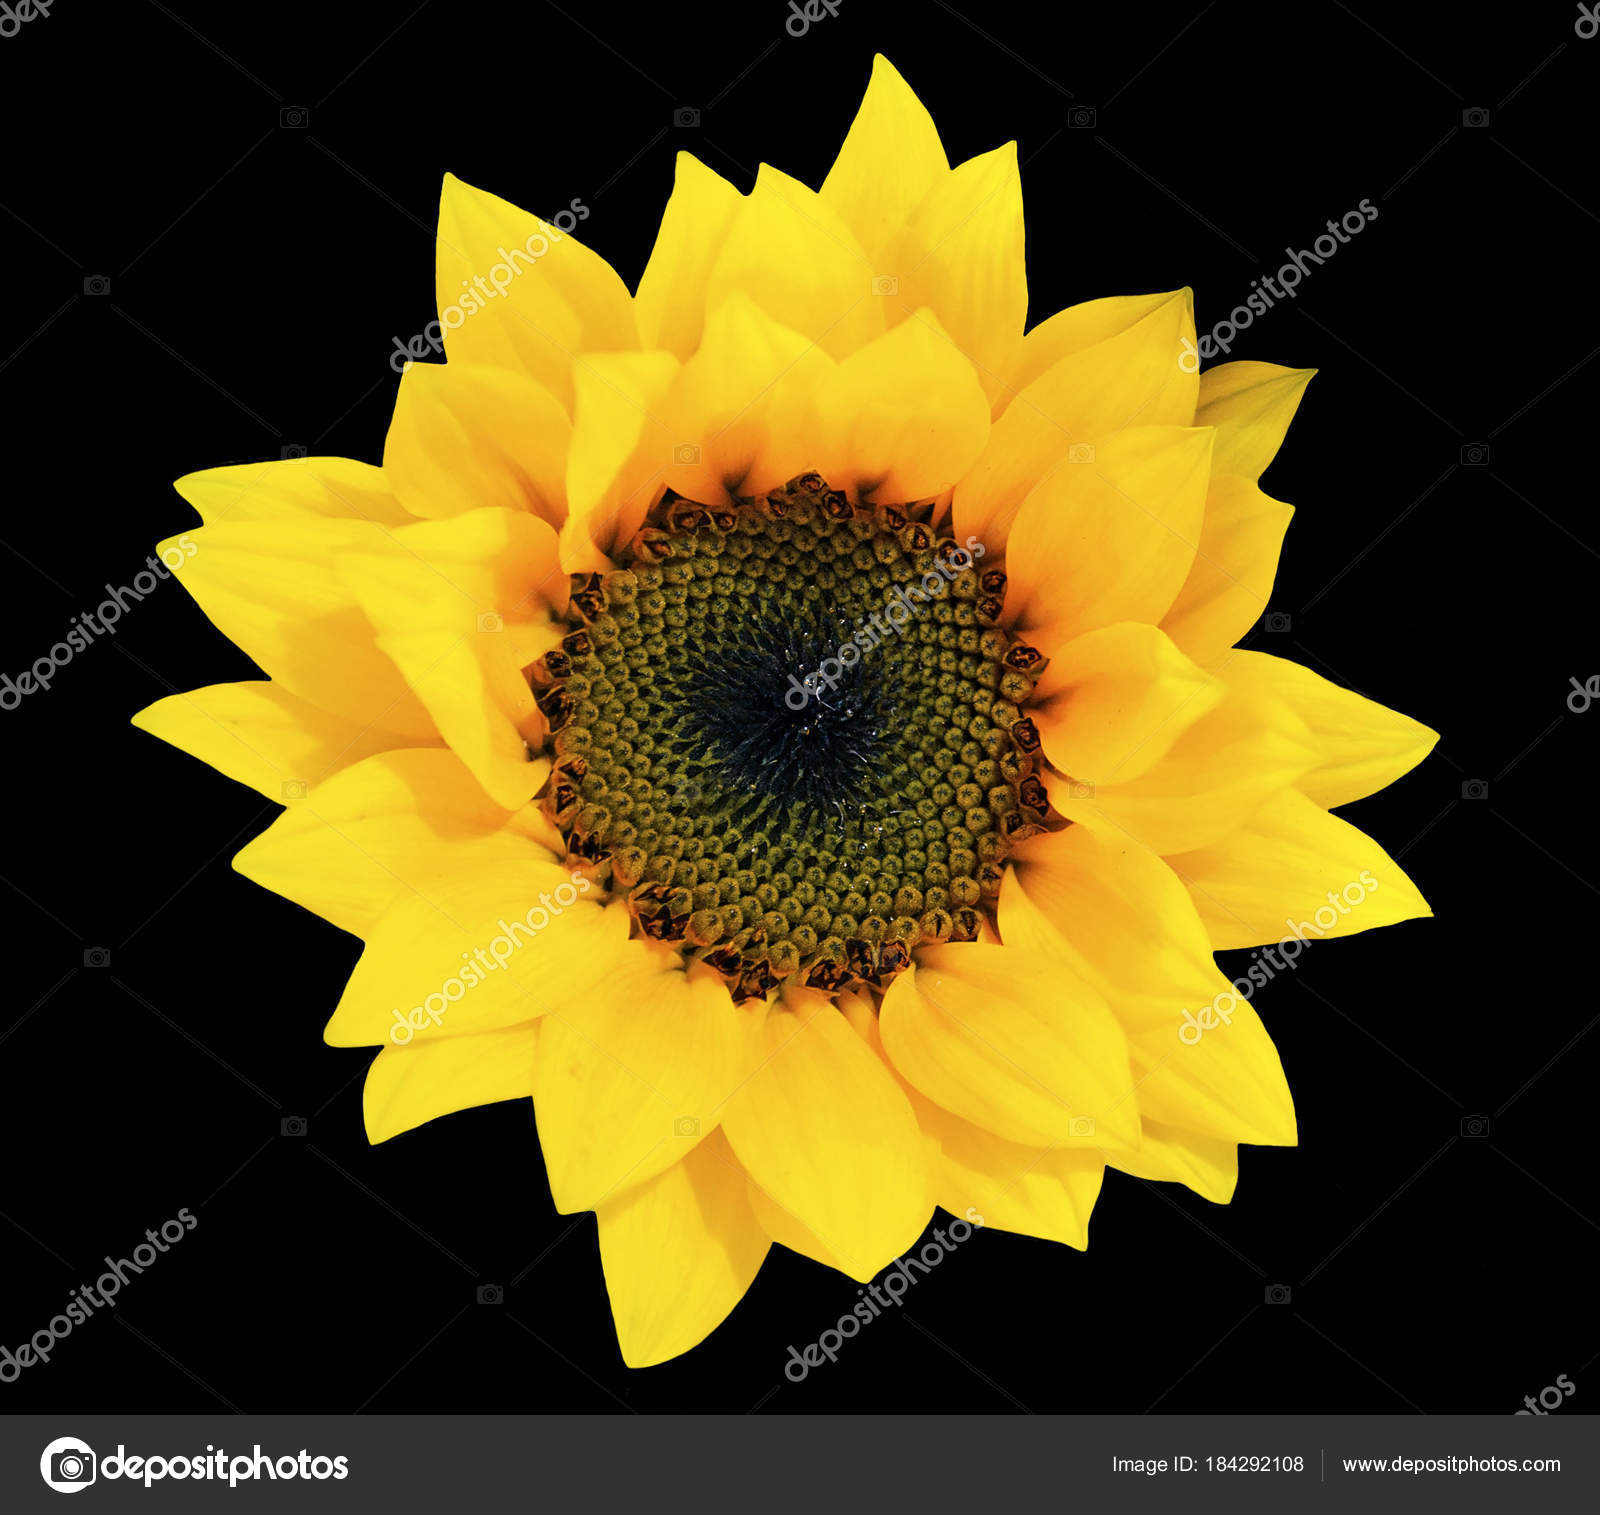 Cutout Flower Isolated Yellow Sunflower Black Background — Stock ...